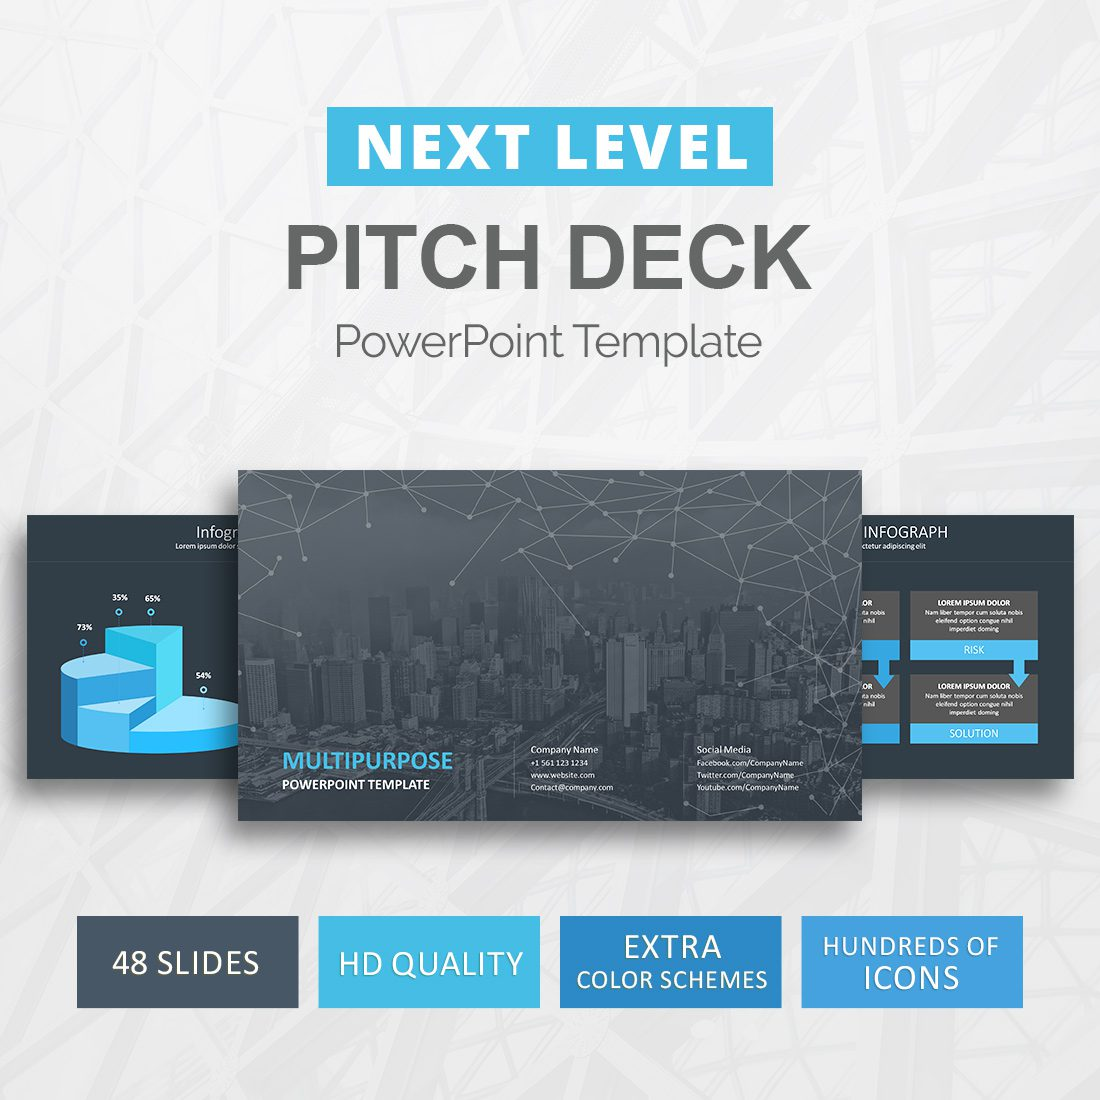 Next level pitch deck